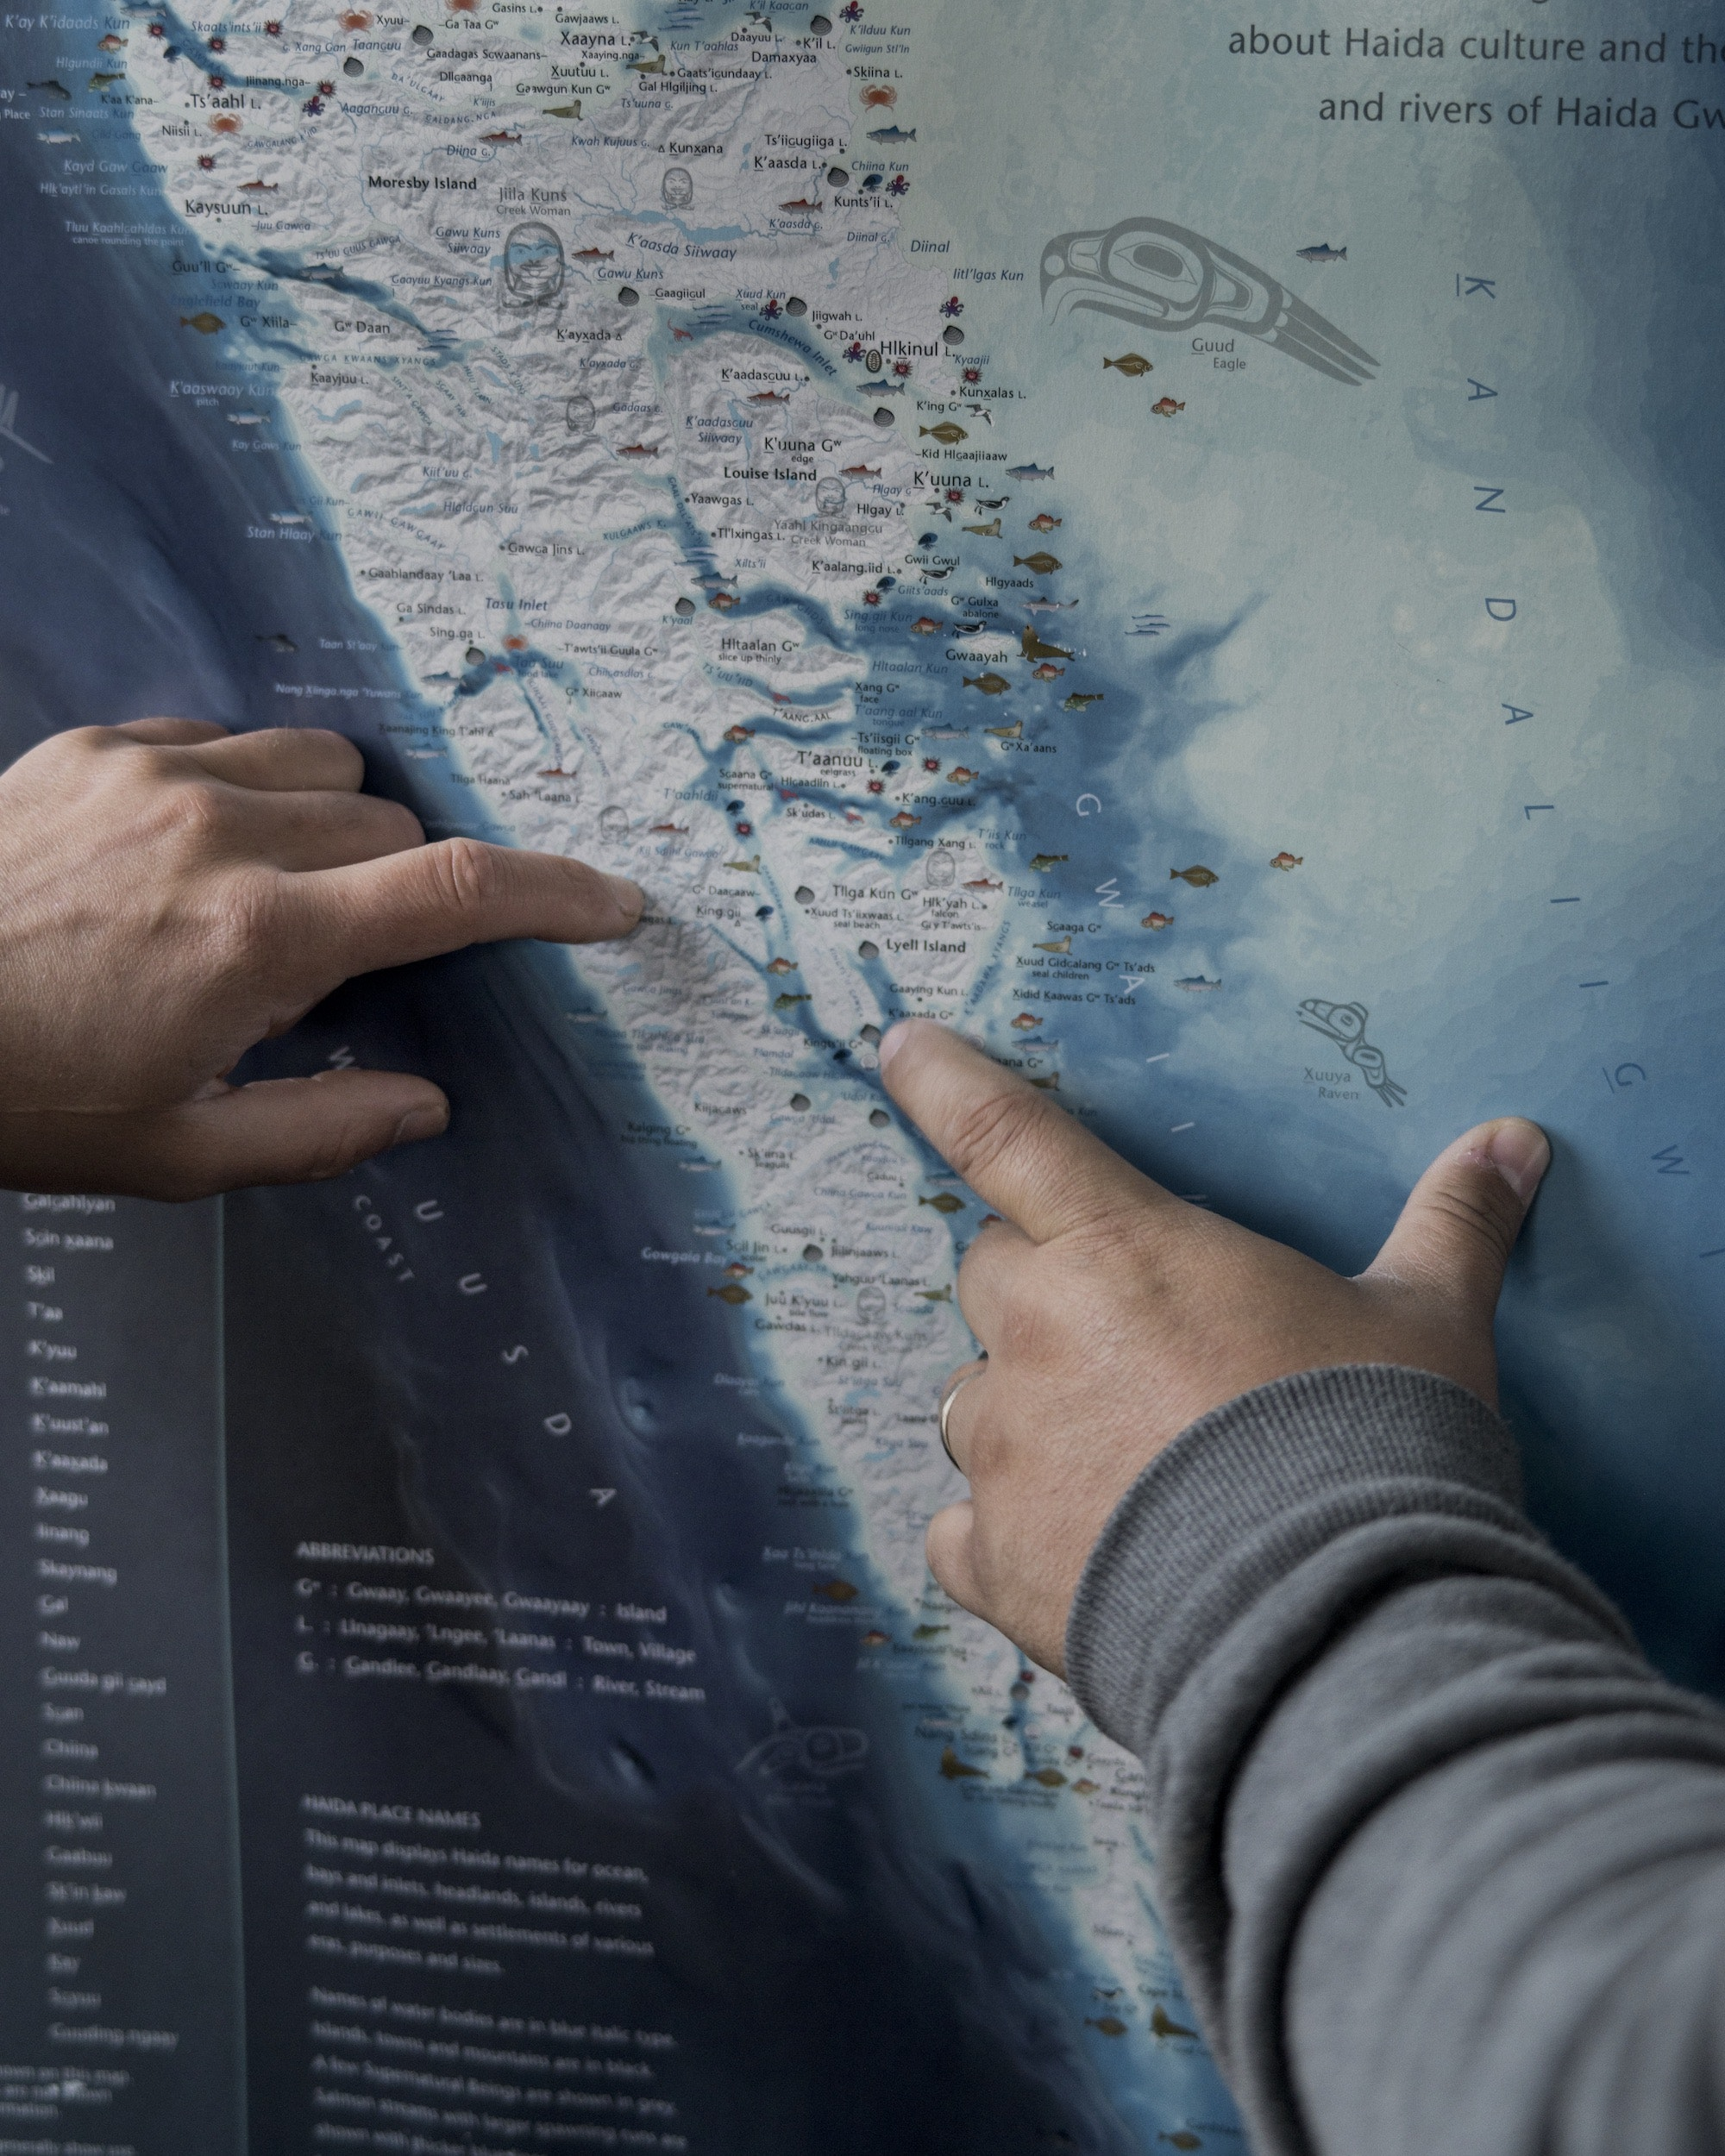 Iiljuwaas Leonard Arens points out fishing spots on his expedition boat's map.